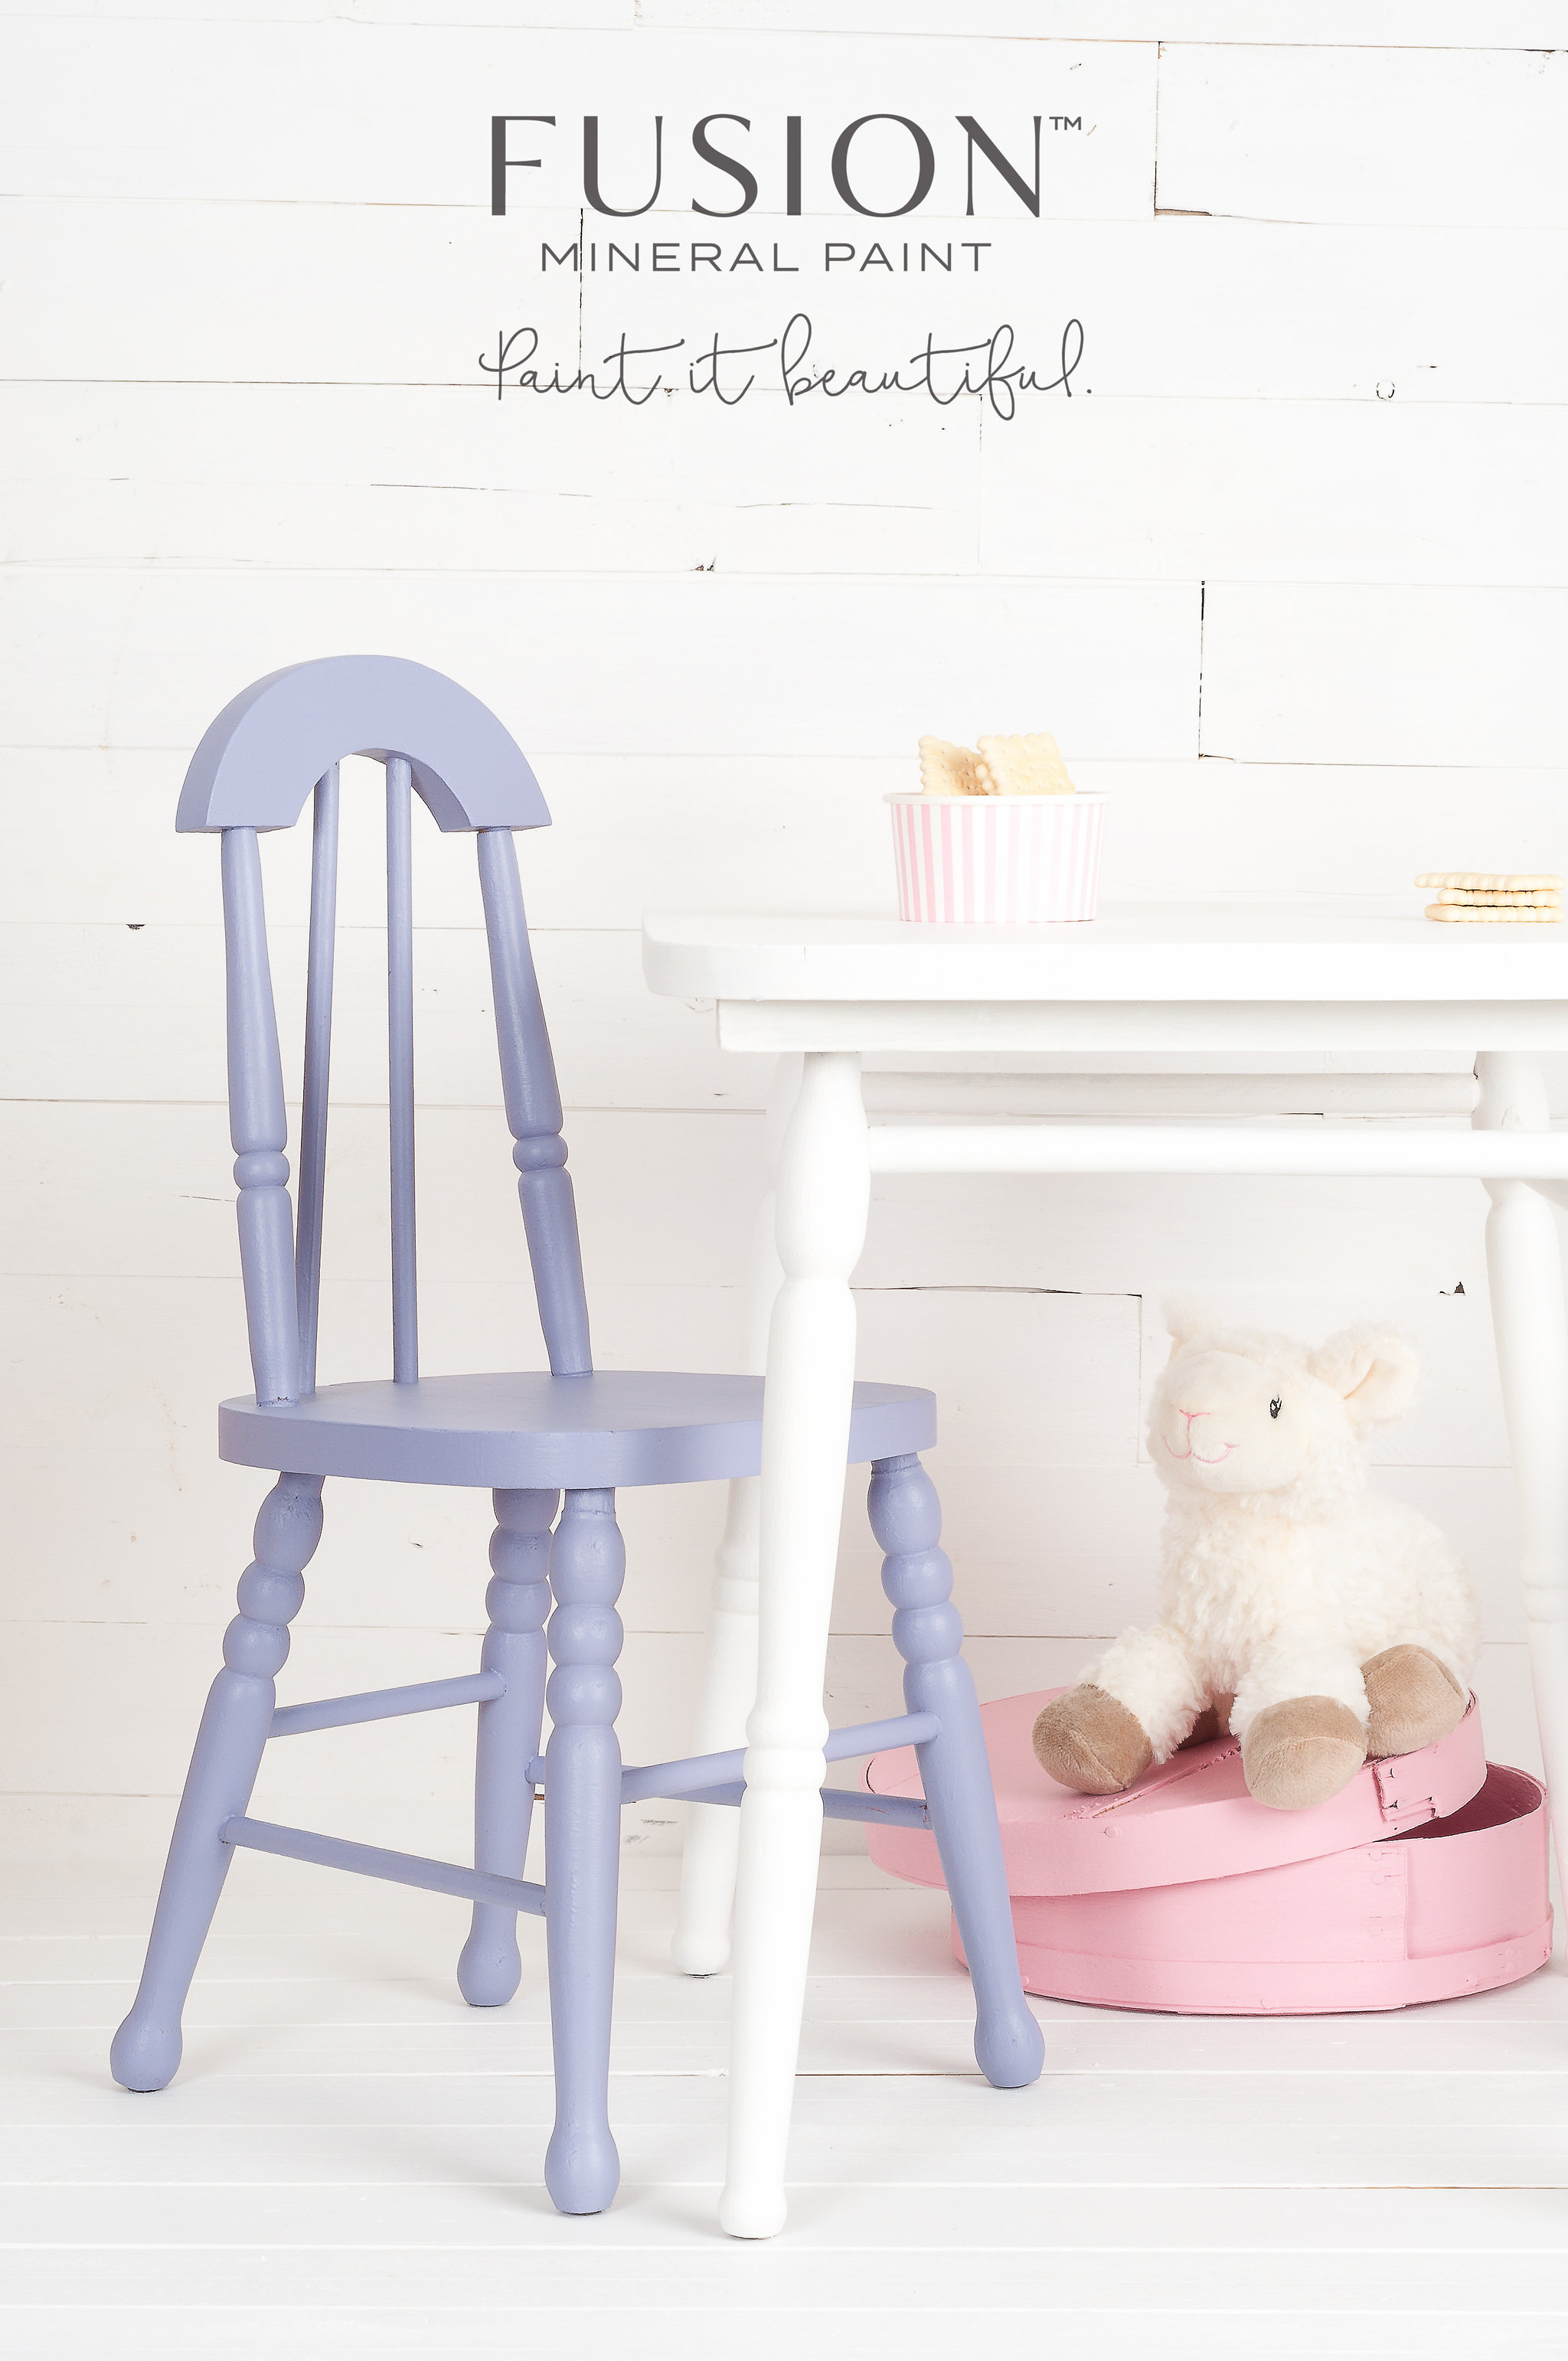 This little chair was painted a beautiful shade of lavender blue using a custom blend of Fusion Mineral Paint. Fusion has 32 recipes available so that you can mix paint to create many wonderful colours like this one.